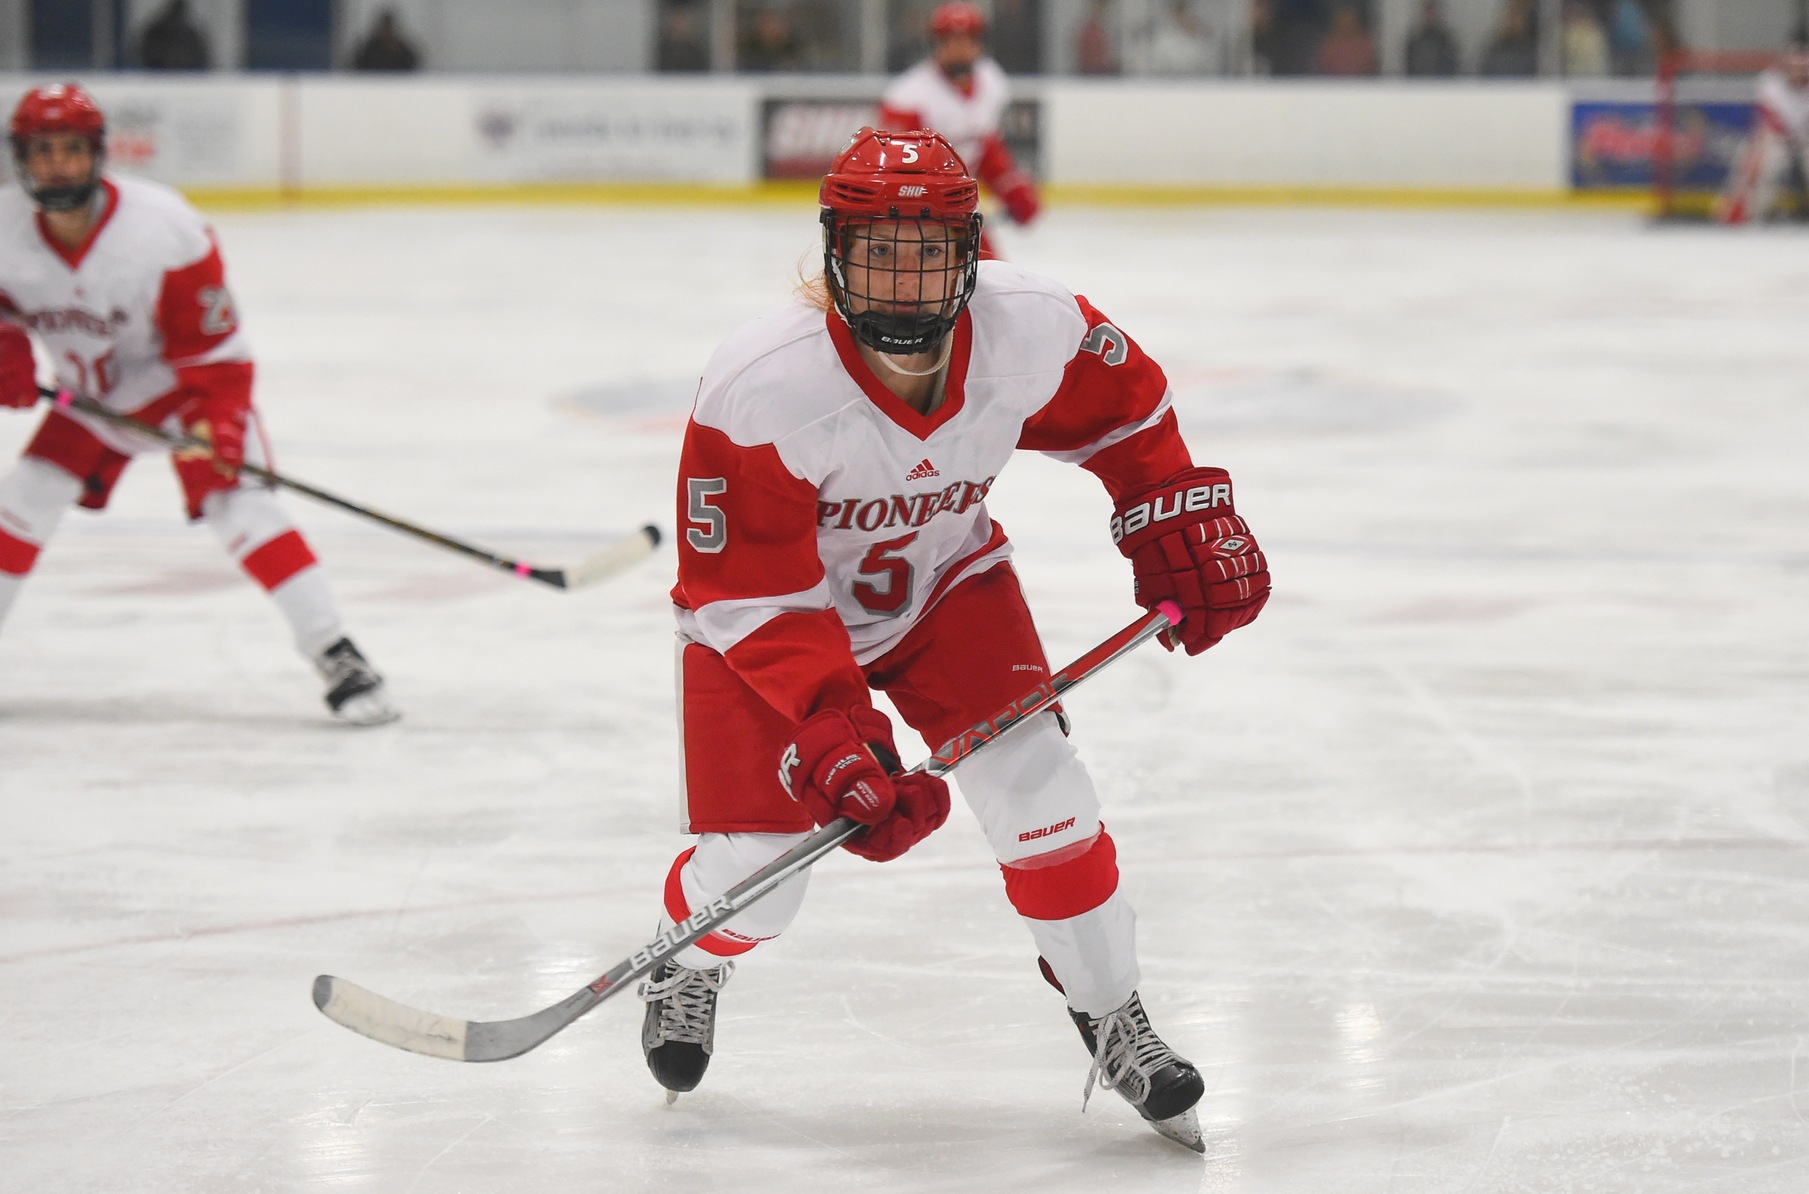 SHU Advance To NEWHA Final After 3-1 Win Over Holy Cross